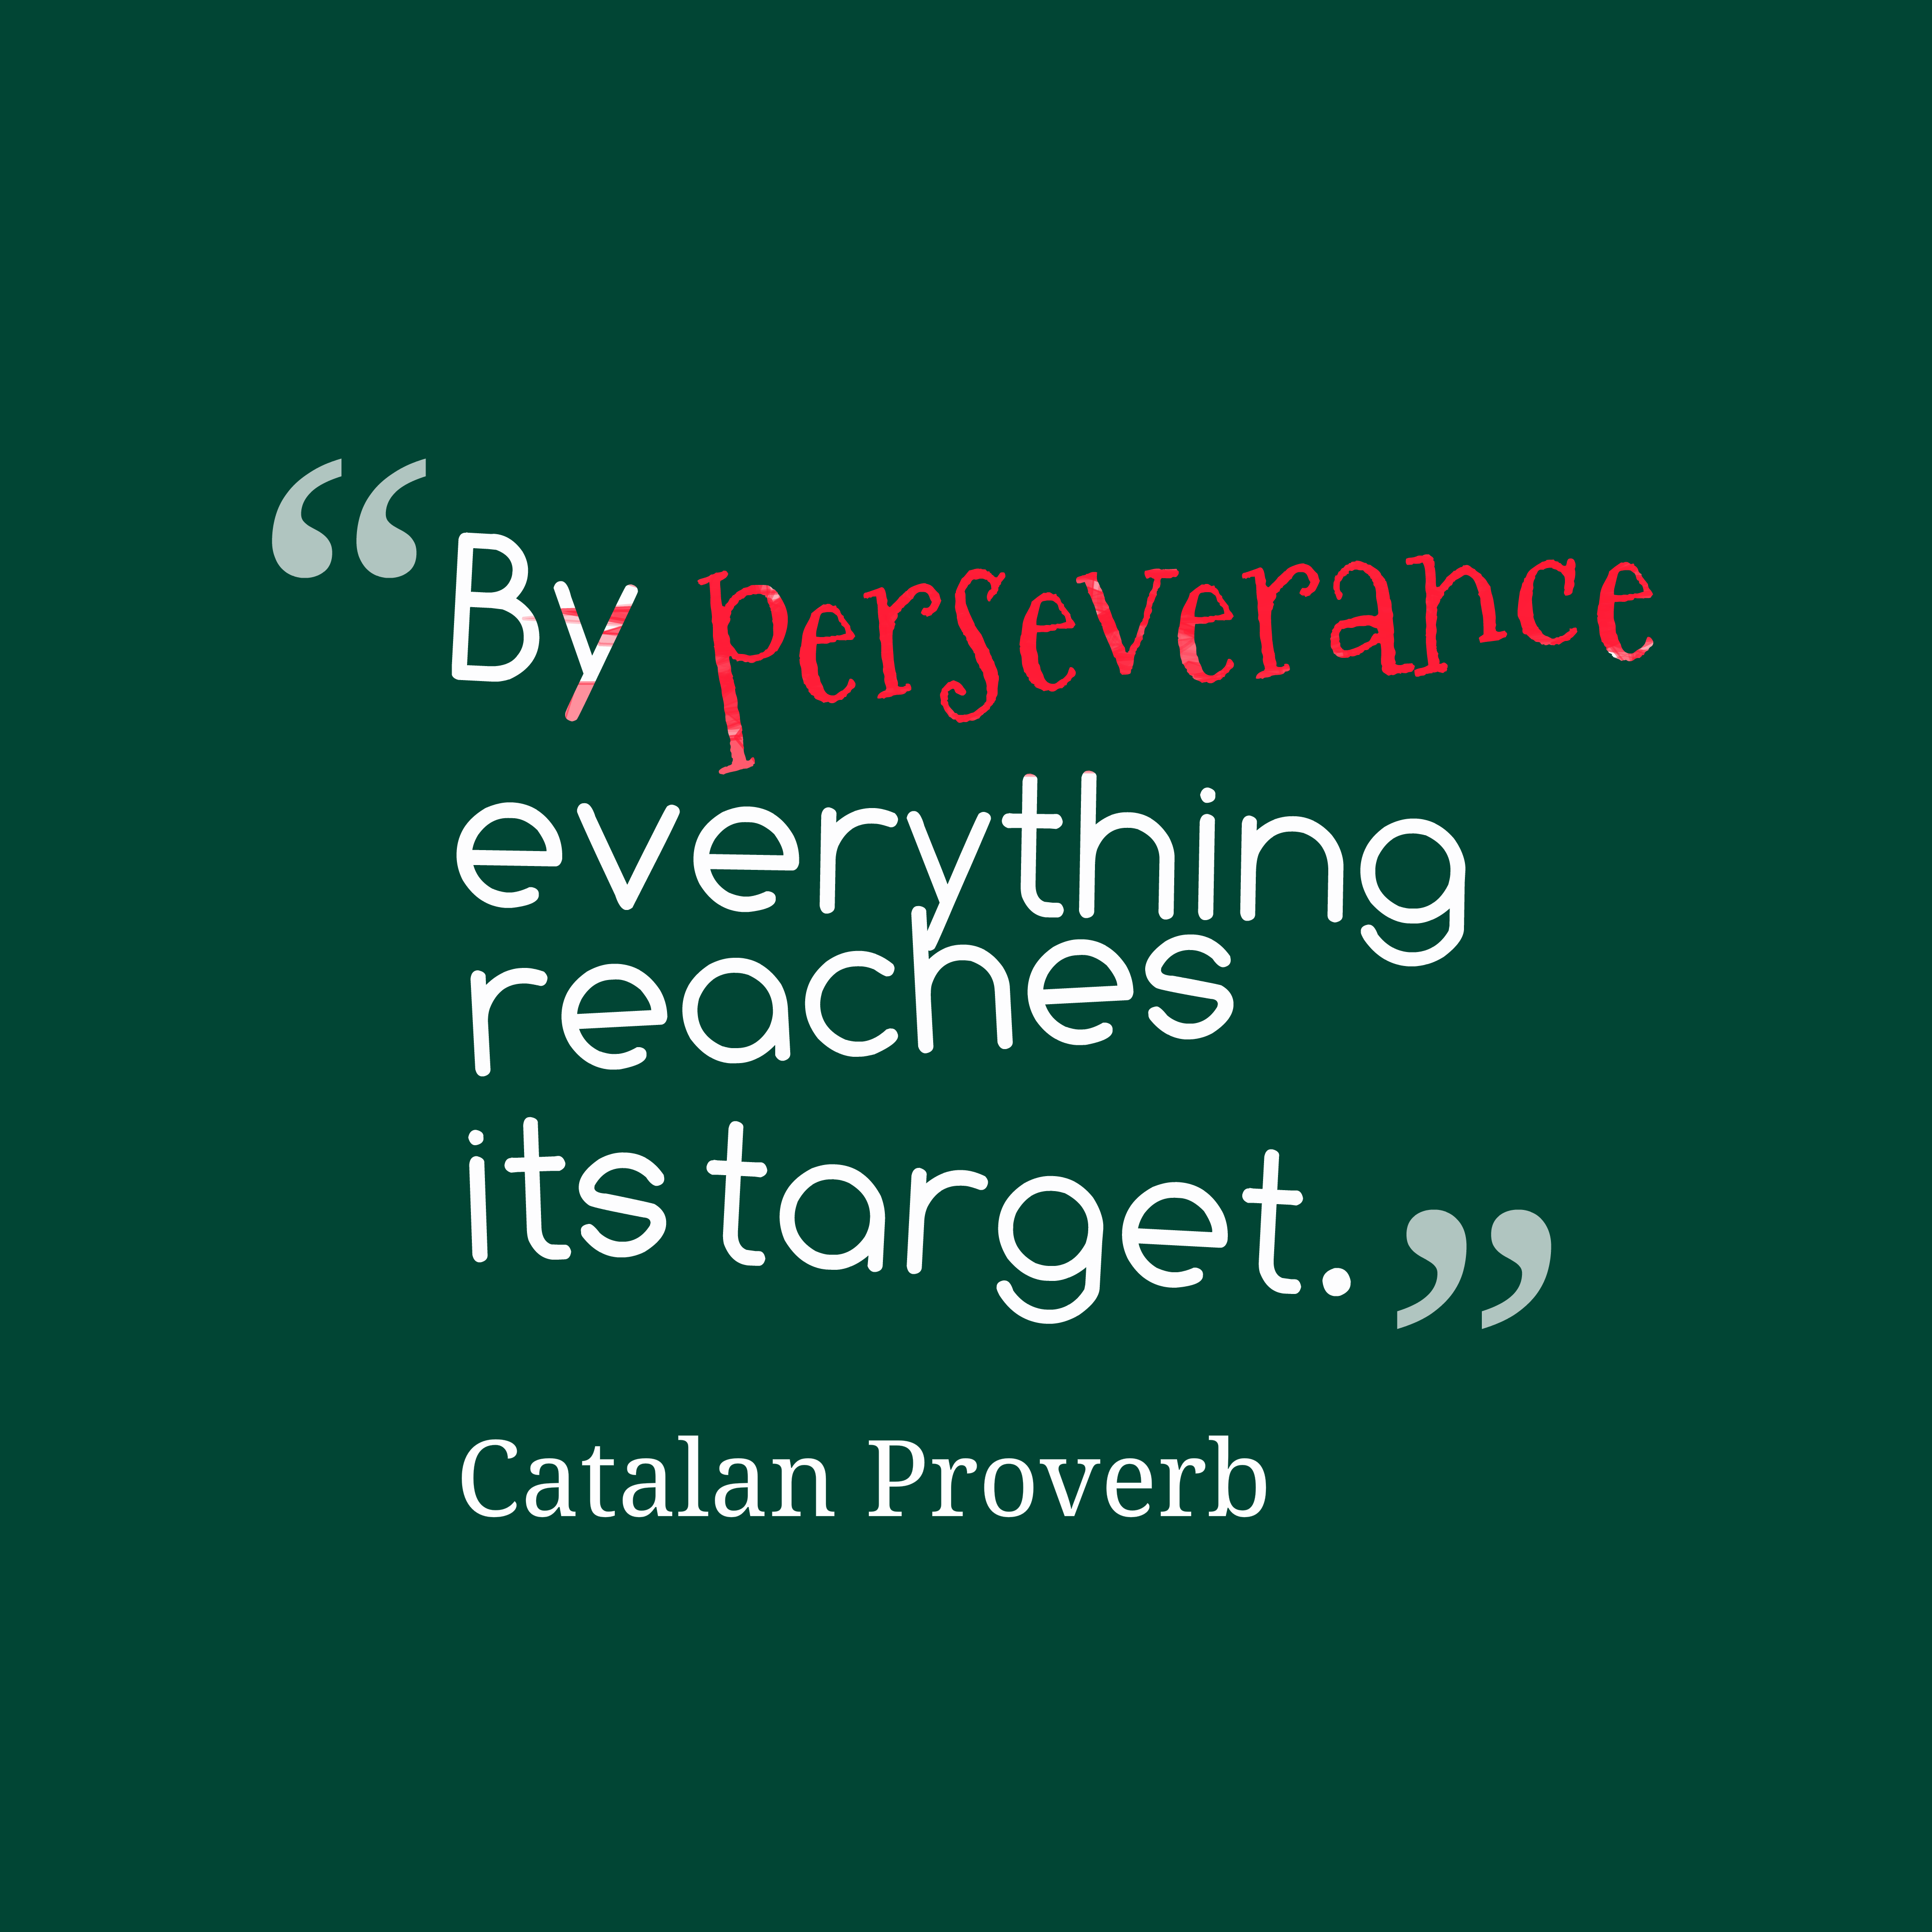 Quotes About Persistence: Quotes About Perseverance (1,110 Quotes